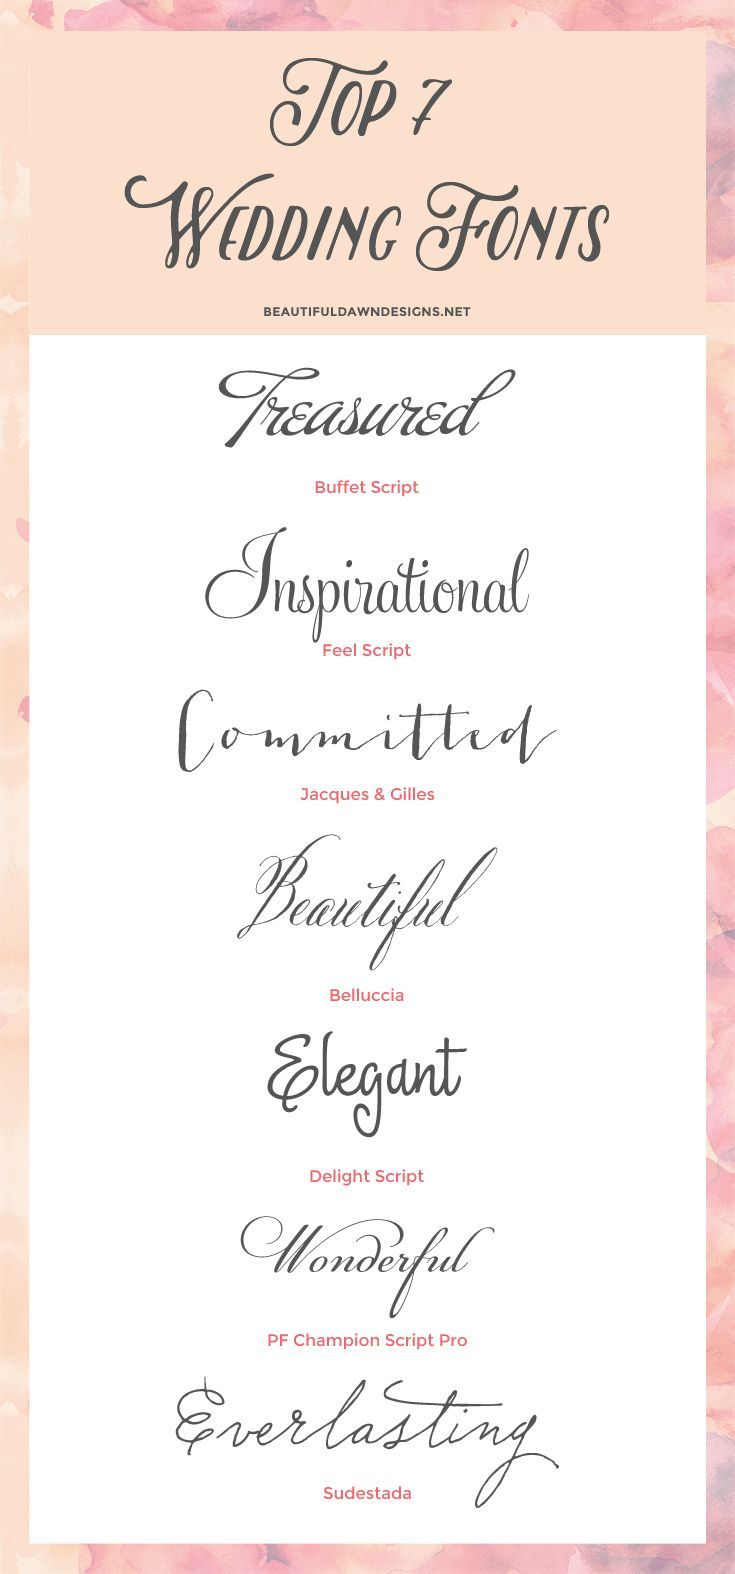 These script fonts would be perfect for wedding invitations or save the date cards!